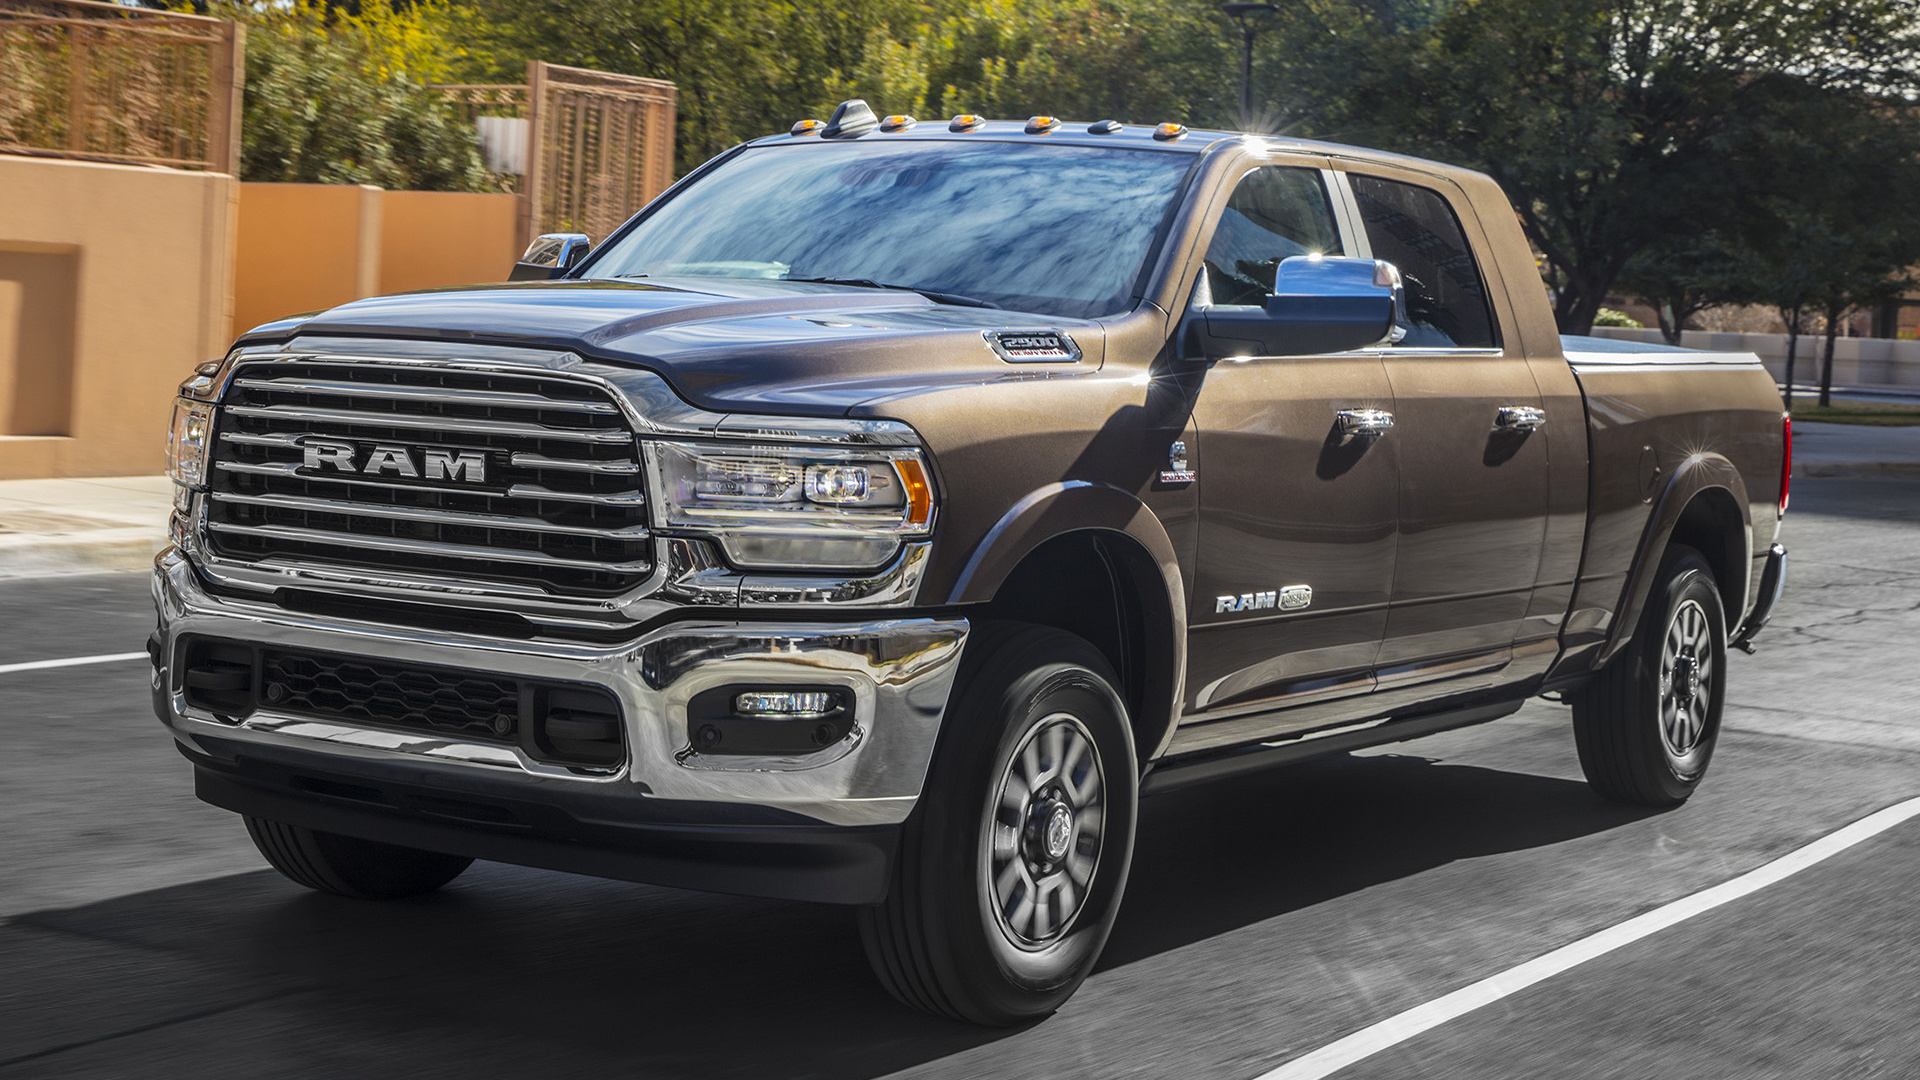 2019 Ram 2500 Longhorn Mega Cab - Wallpapers and HD Images ...